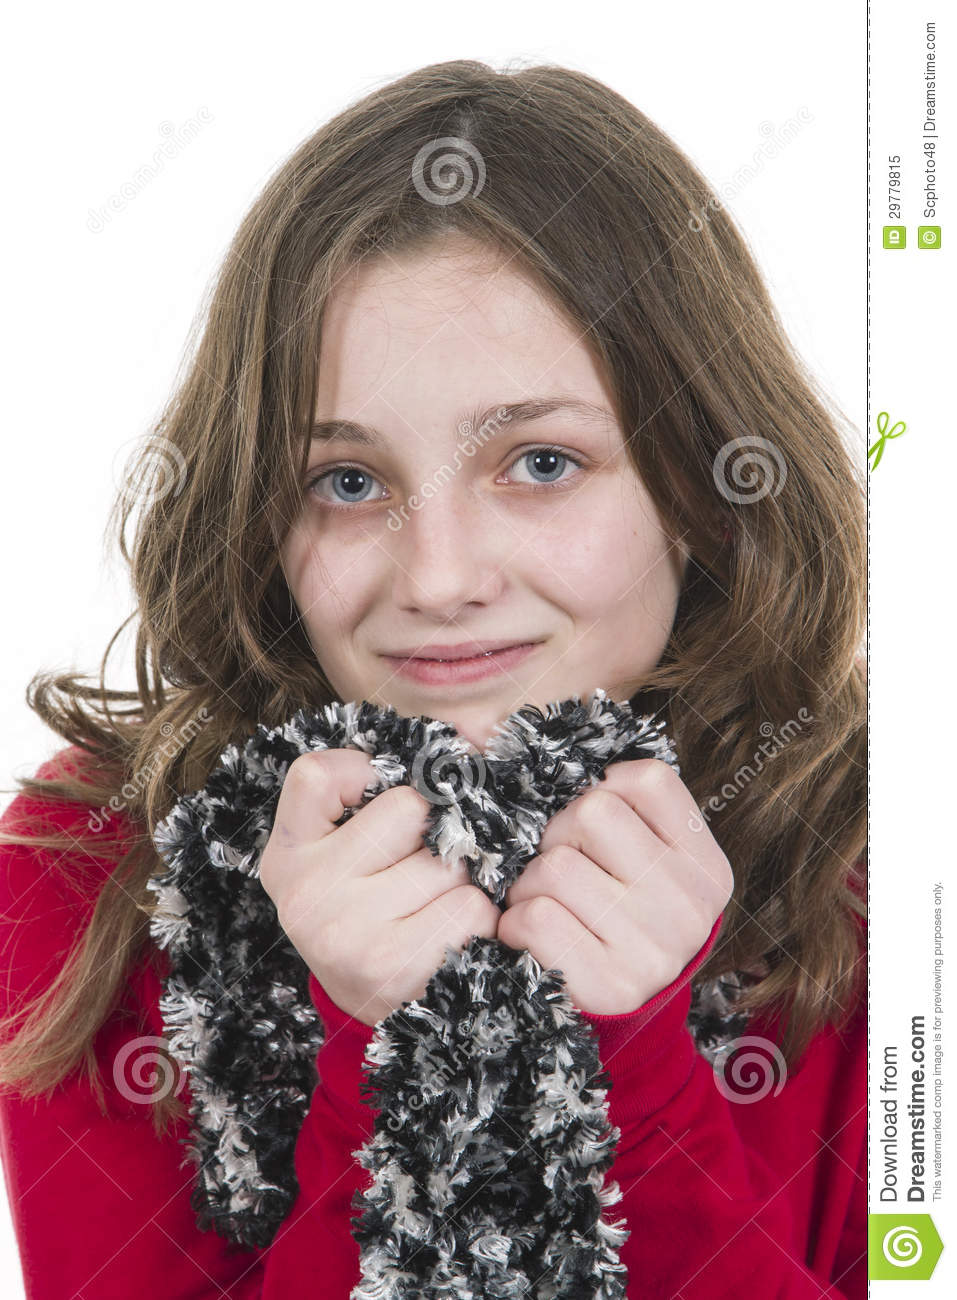 Pre teen young girl posing with scarf held to chin.